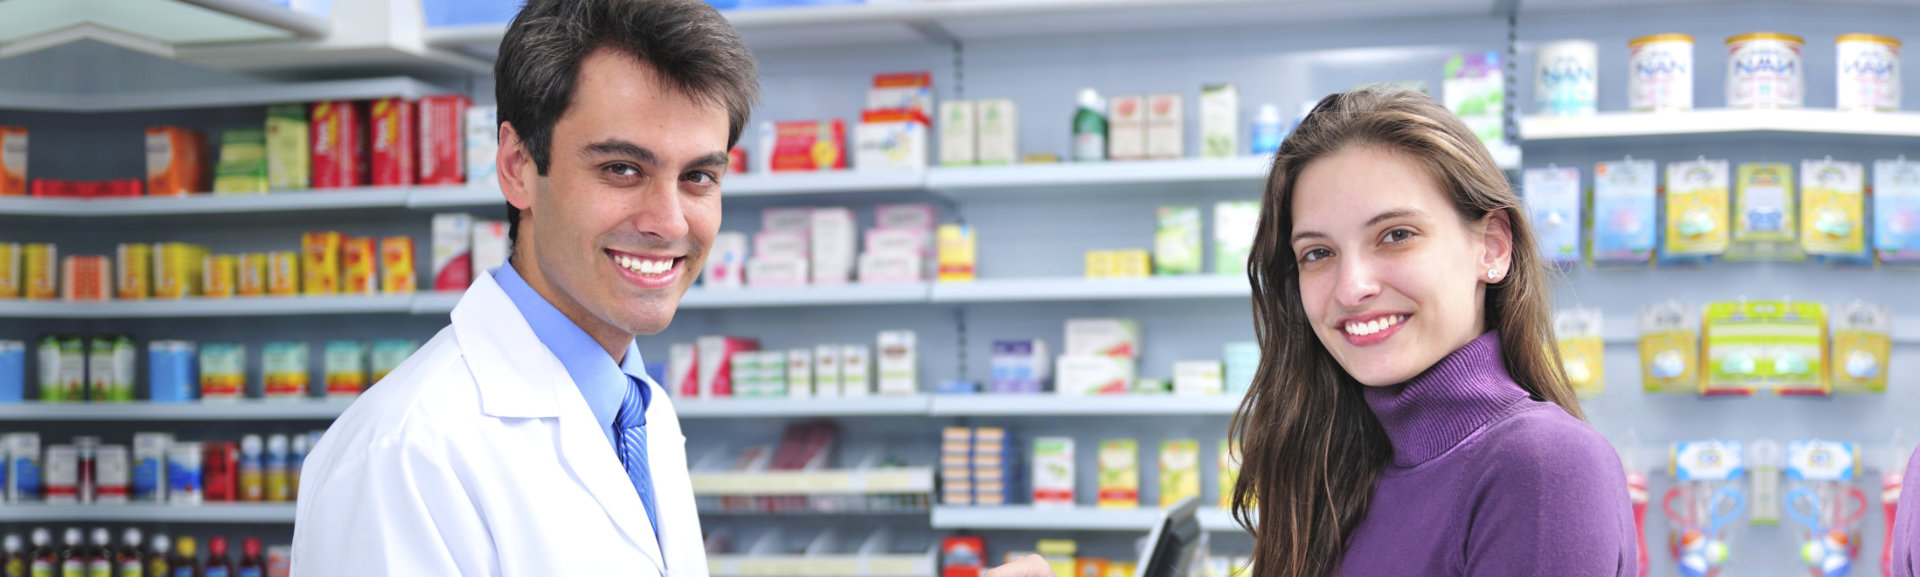 male pharmacist and a female costumer smiling